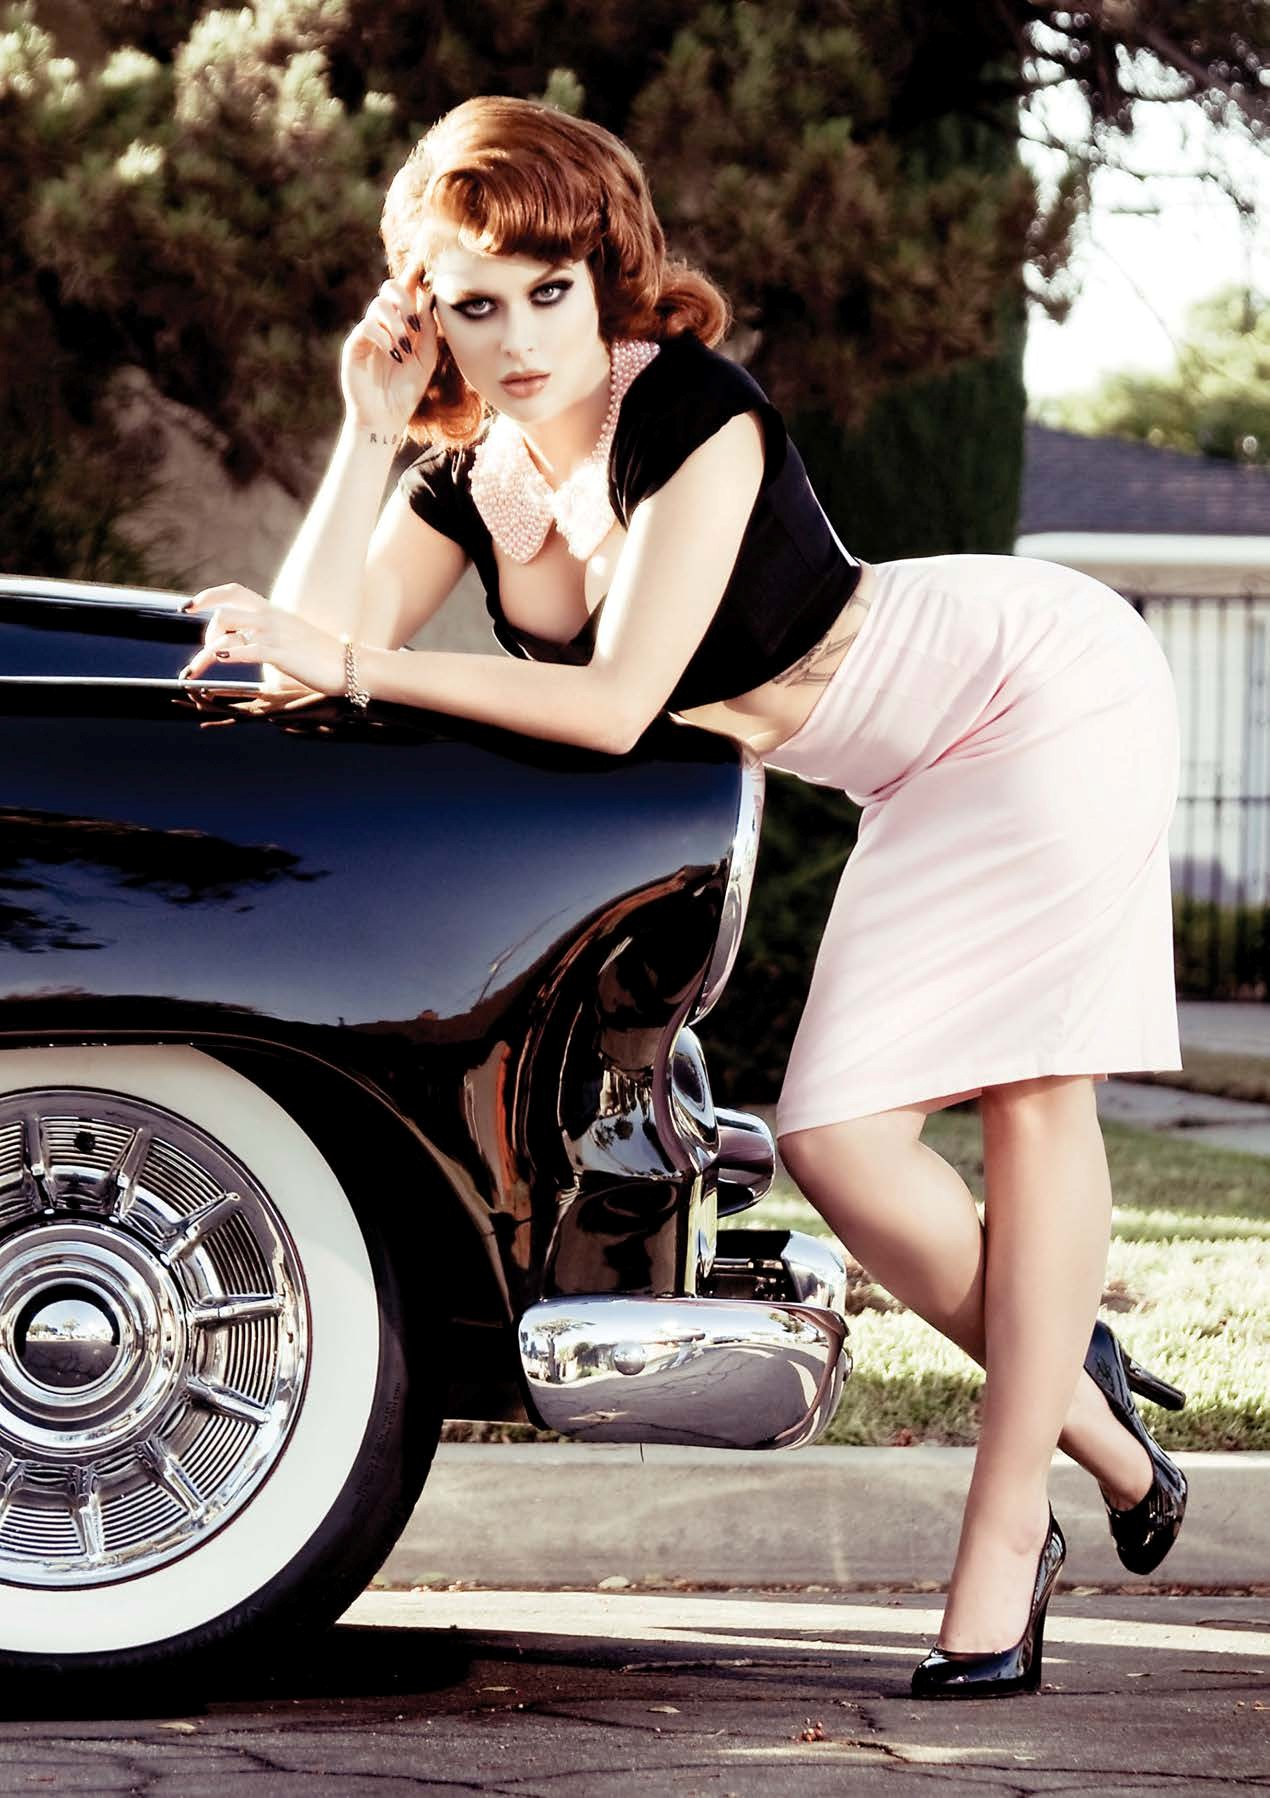 Renee Olstead Is Gangsta Hot Next To A Chevy Deluxe